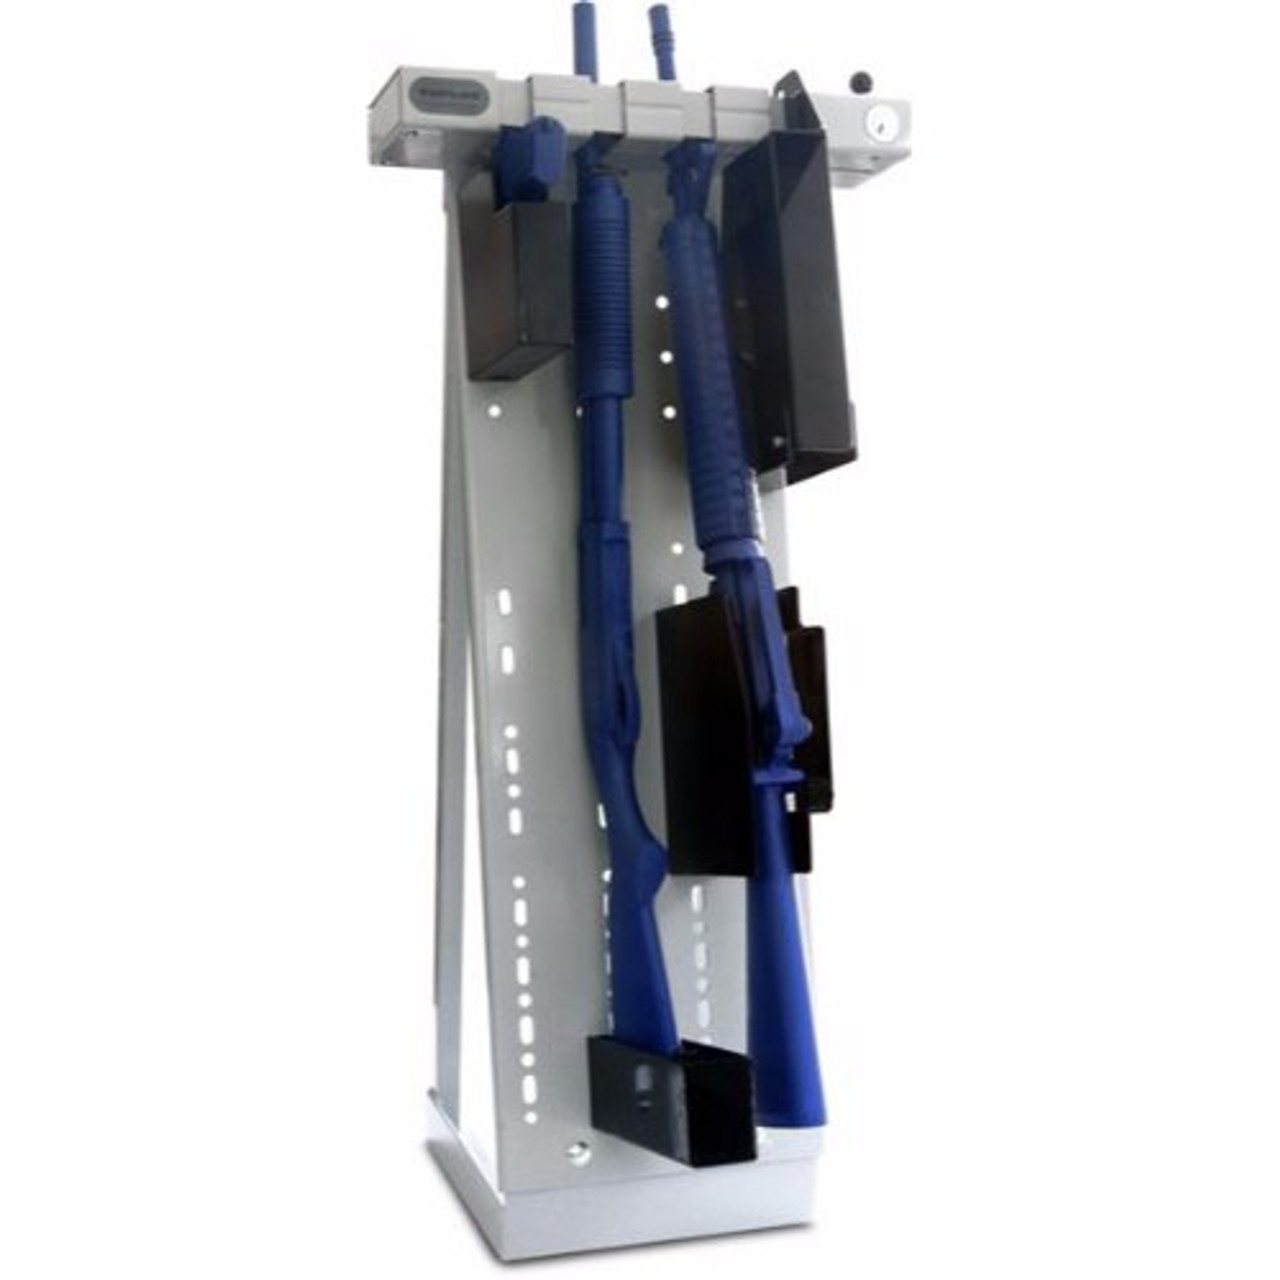 Tufloc 72-100  Quad Rack with LONG BACK PLATE, mounts to any wall or surface, holds up to 4 Guns, AR15, Handgun, Rifle, Shotgun, 47x19x5, Powder-Coated Steel, with optional vertical stand, Lockable